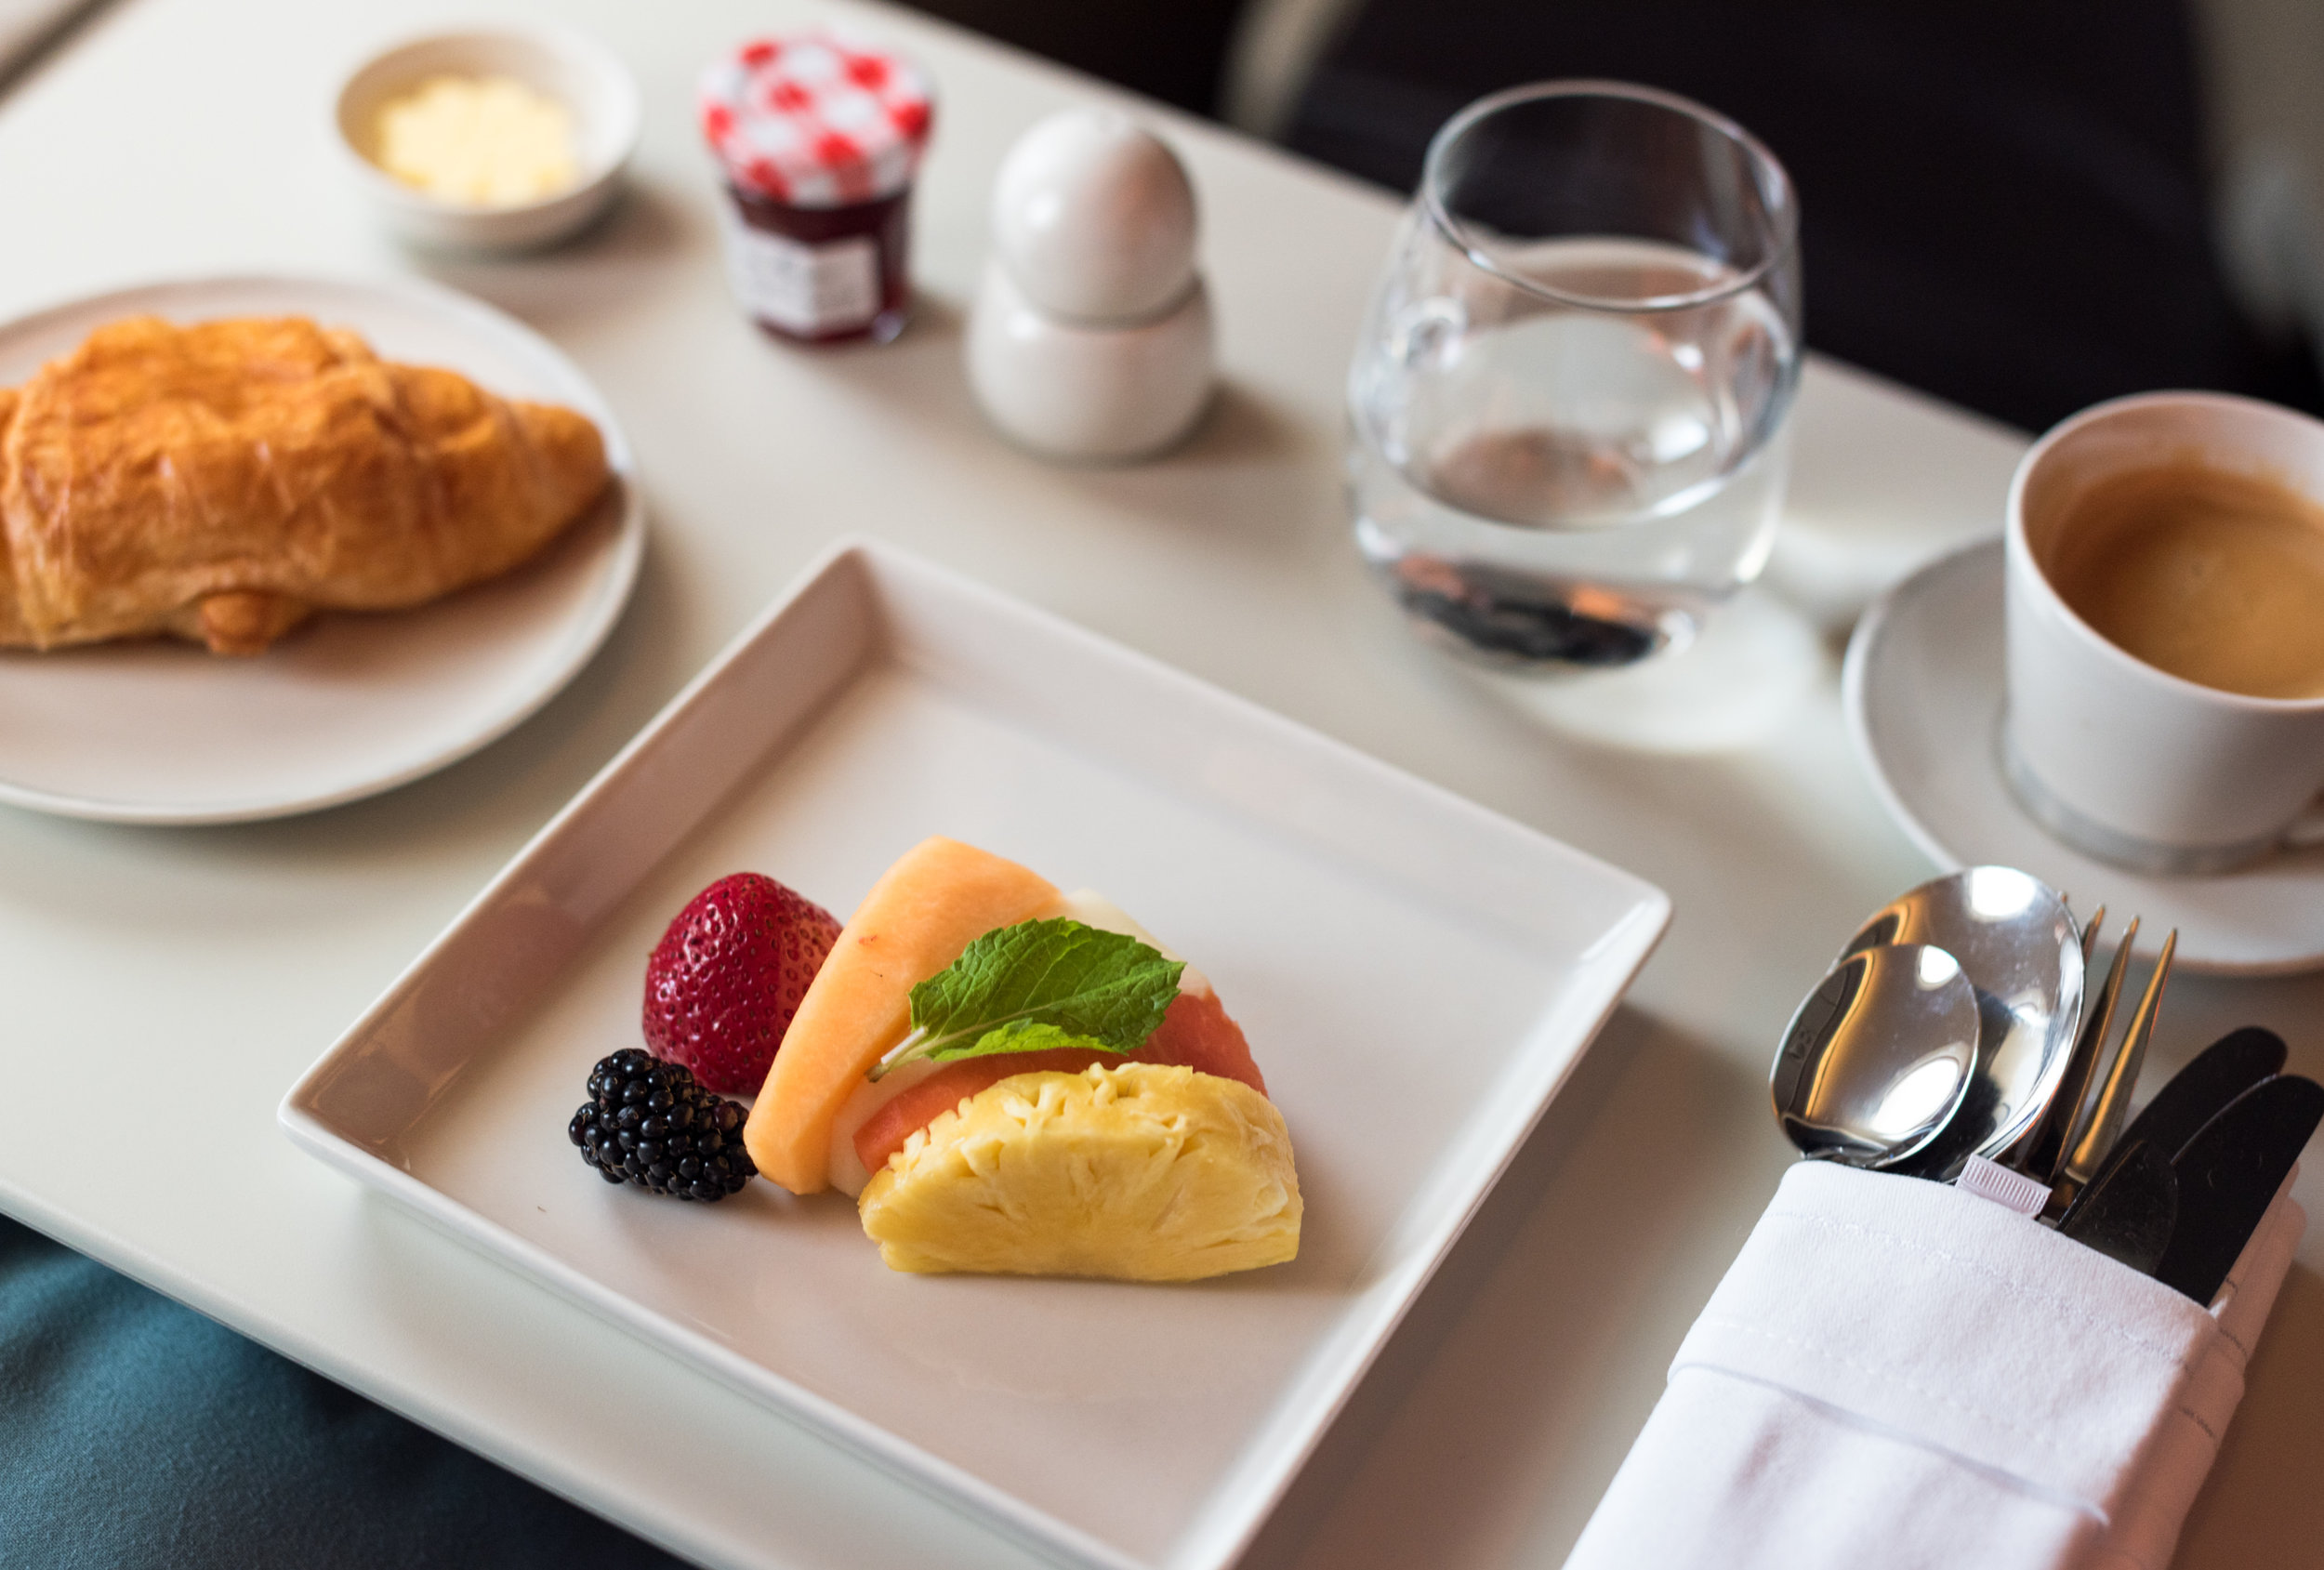 Croissant and Fresh Fruits - Brunch Service  Singapore Airlines SQ802 Business - SIN to PEK